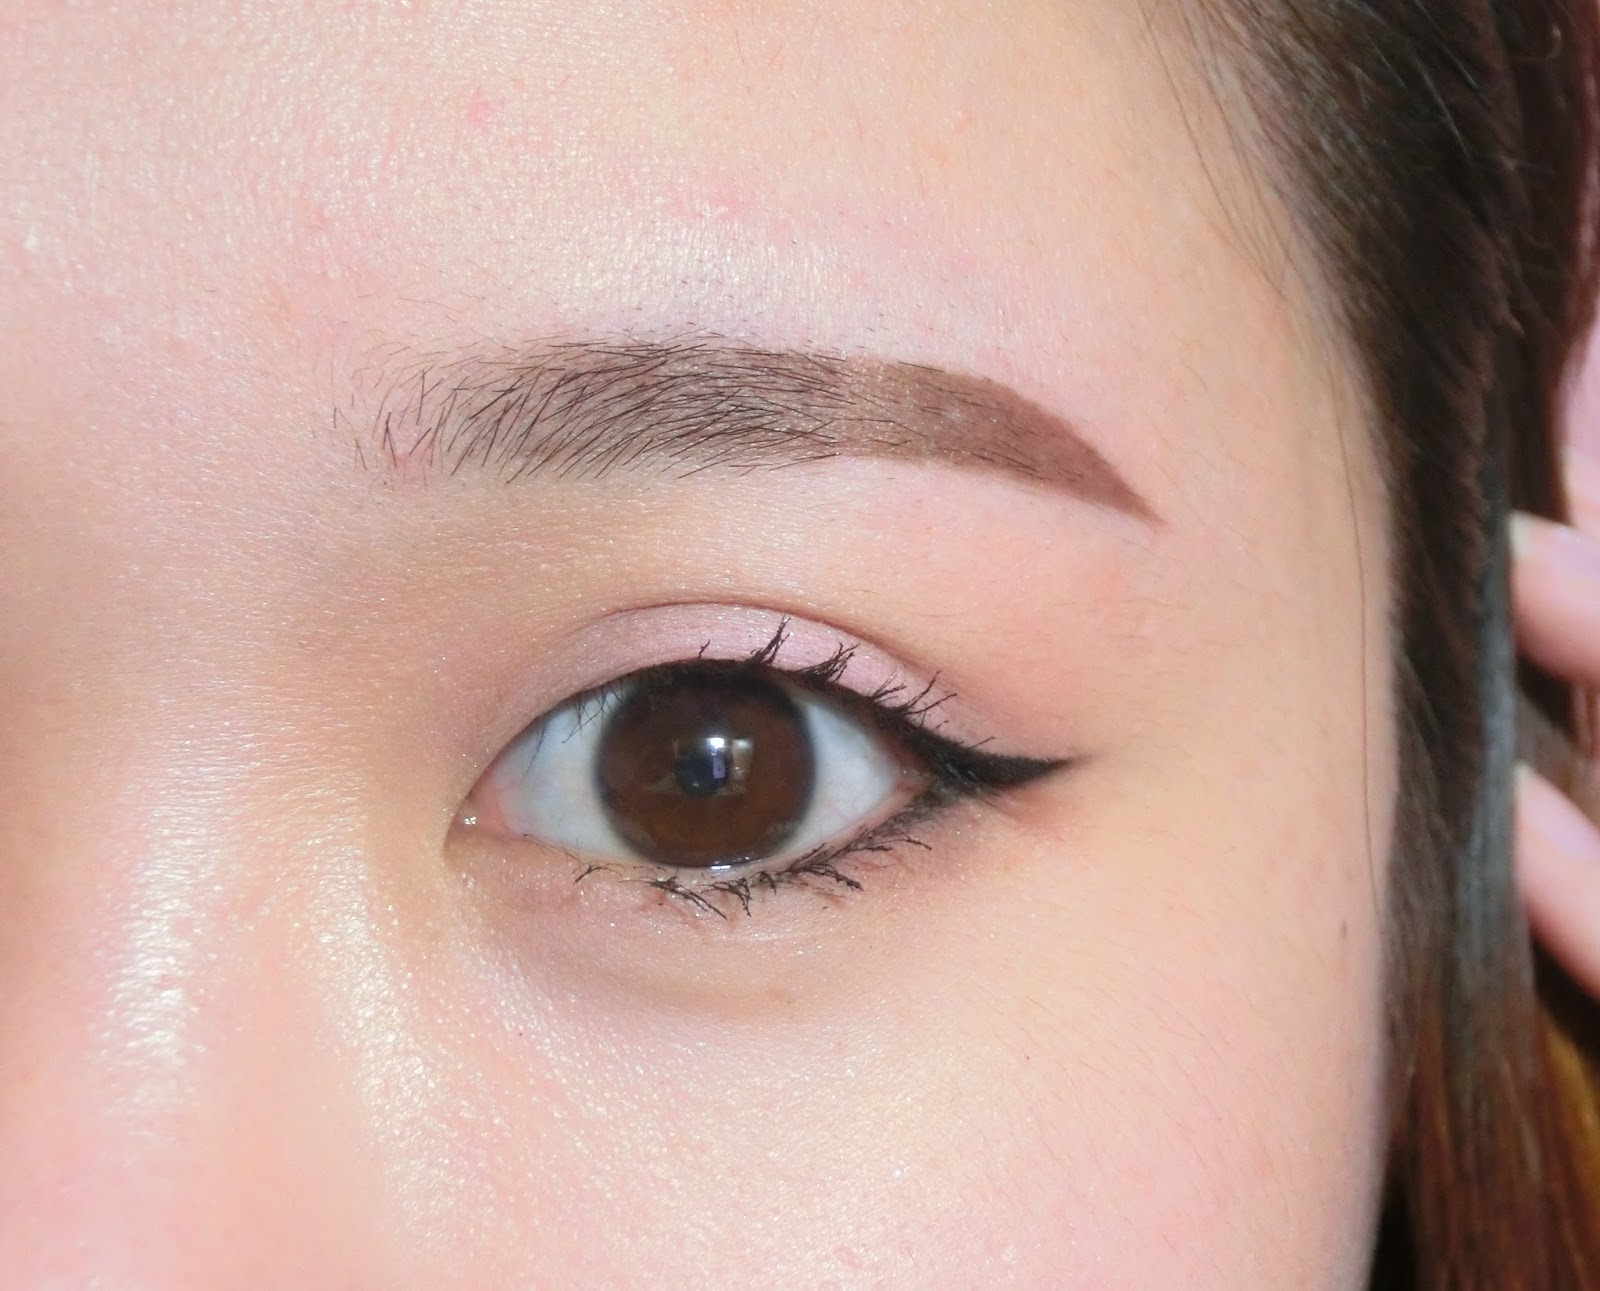 Lois De La Beaut Review Tony Moly 7 Days Eye Brow Tattoo